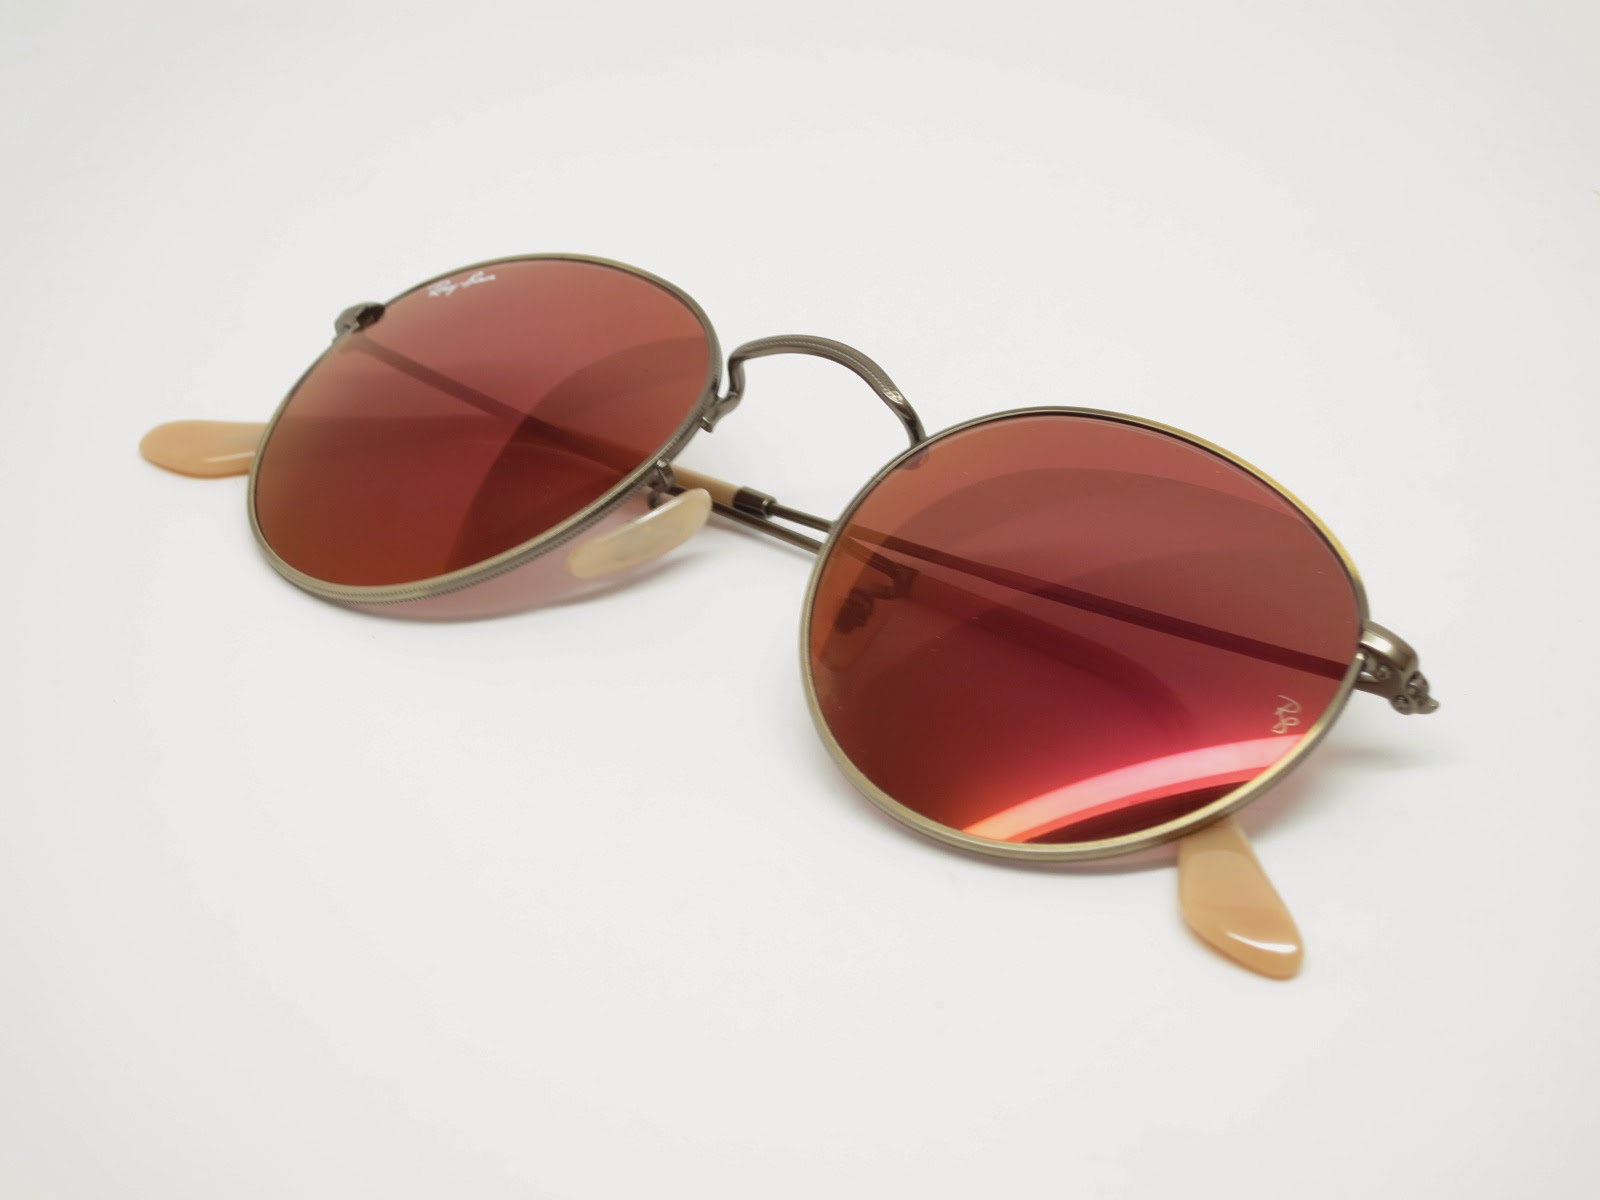 646bb01e49e066 Ray-Ban RB 3447 Round Metal 167 2K Red Mirrored Sunglasses   I Love ...